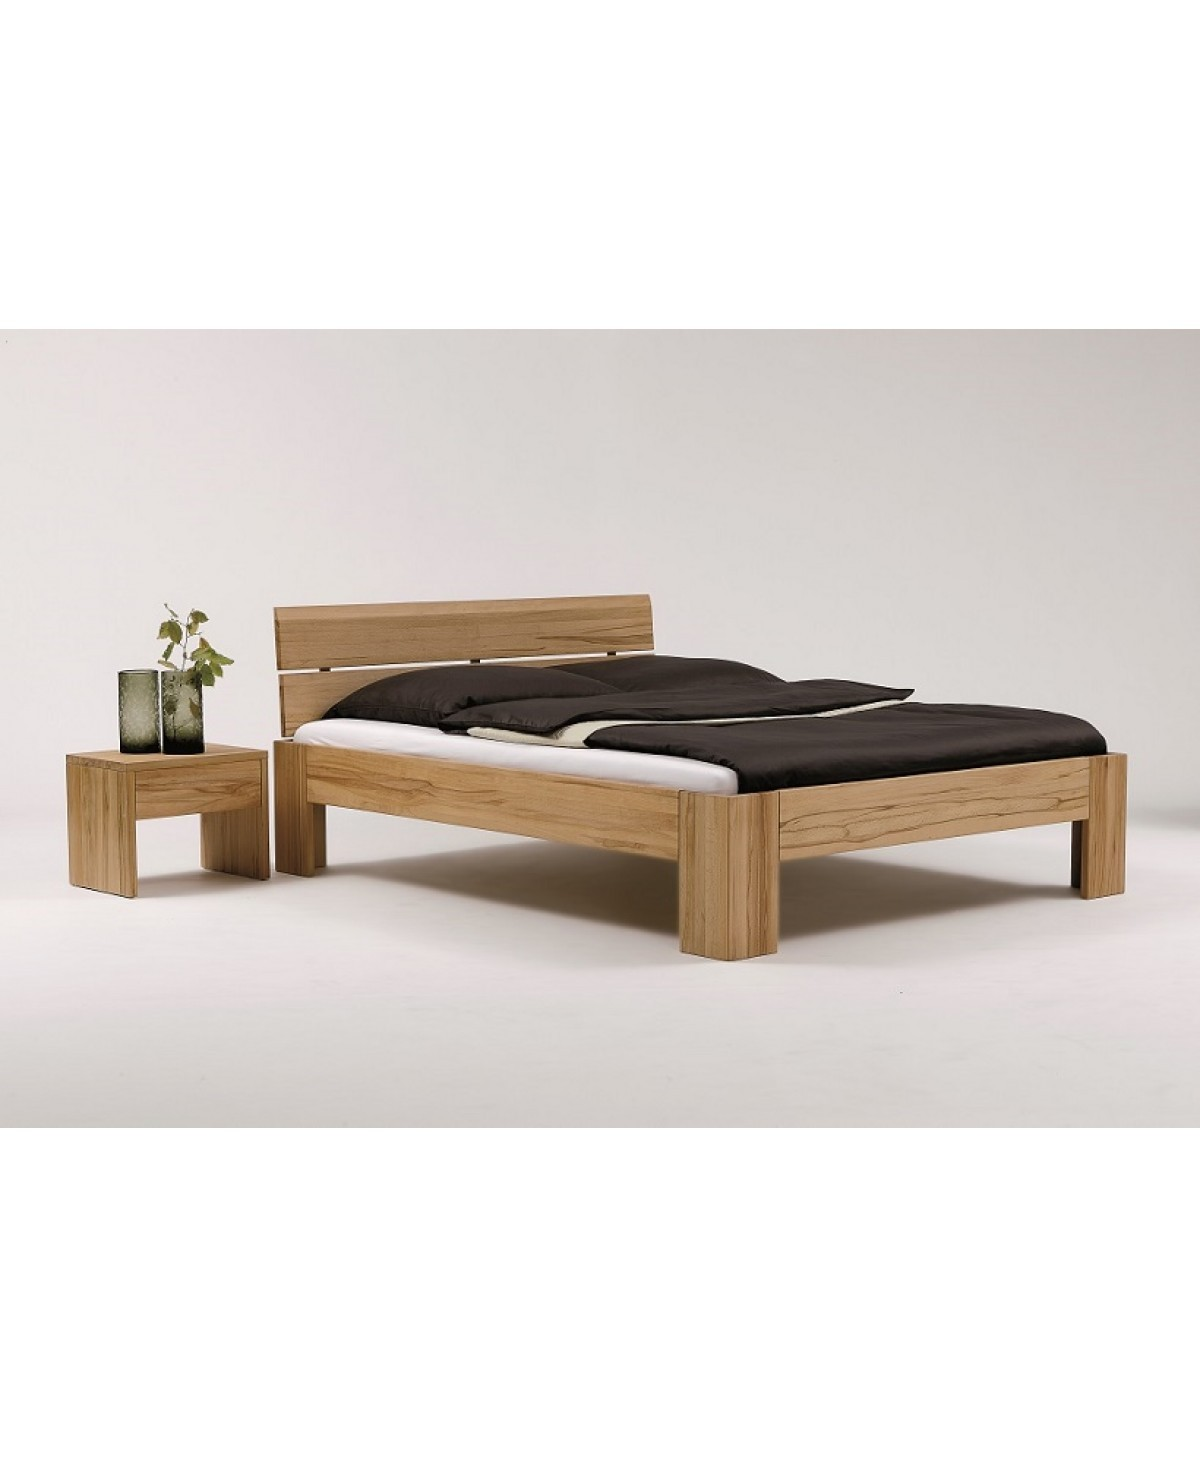 Bed 140x200 Hout.Houten Bed Mika